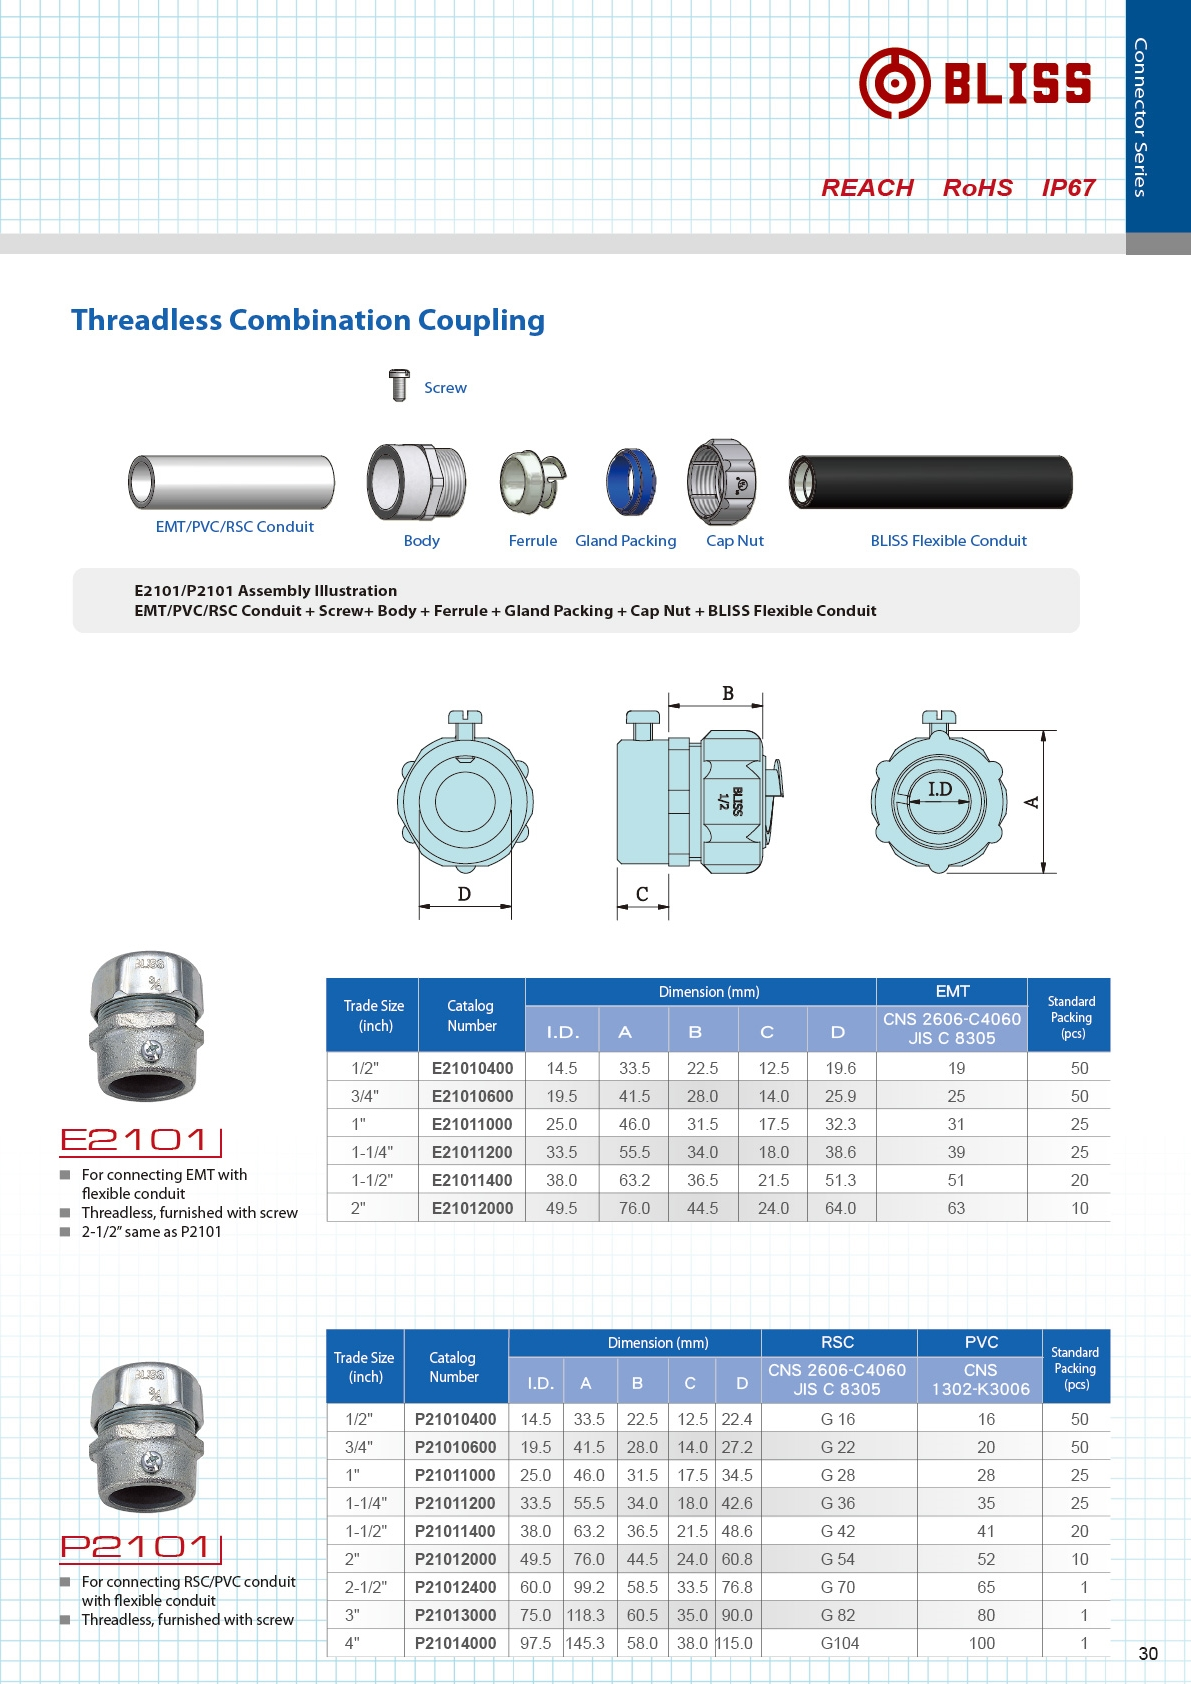 Taiwan Threadless Combination Coupling For Rsc Pvc Conduit Bliss Electrical Plastic Flexible Wire Buy P30 E2101 P21080mb